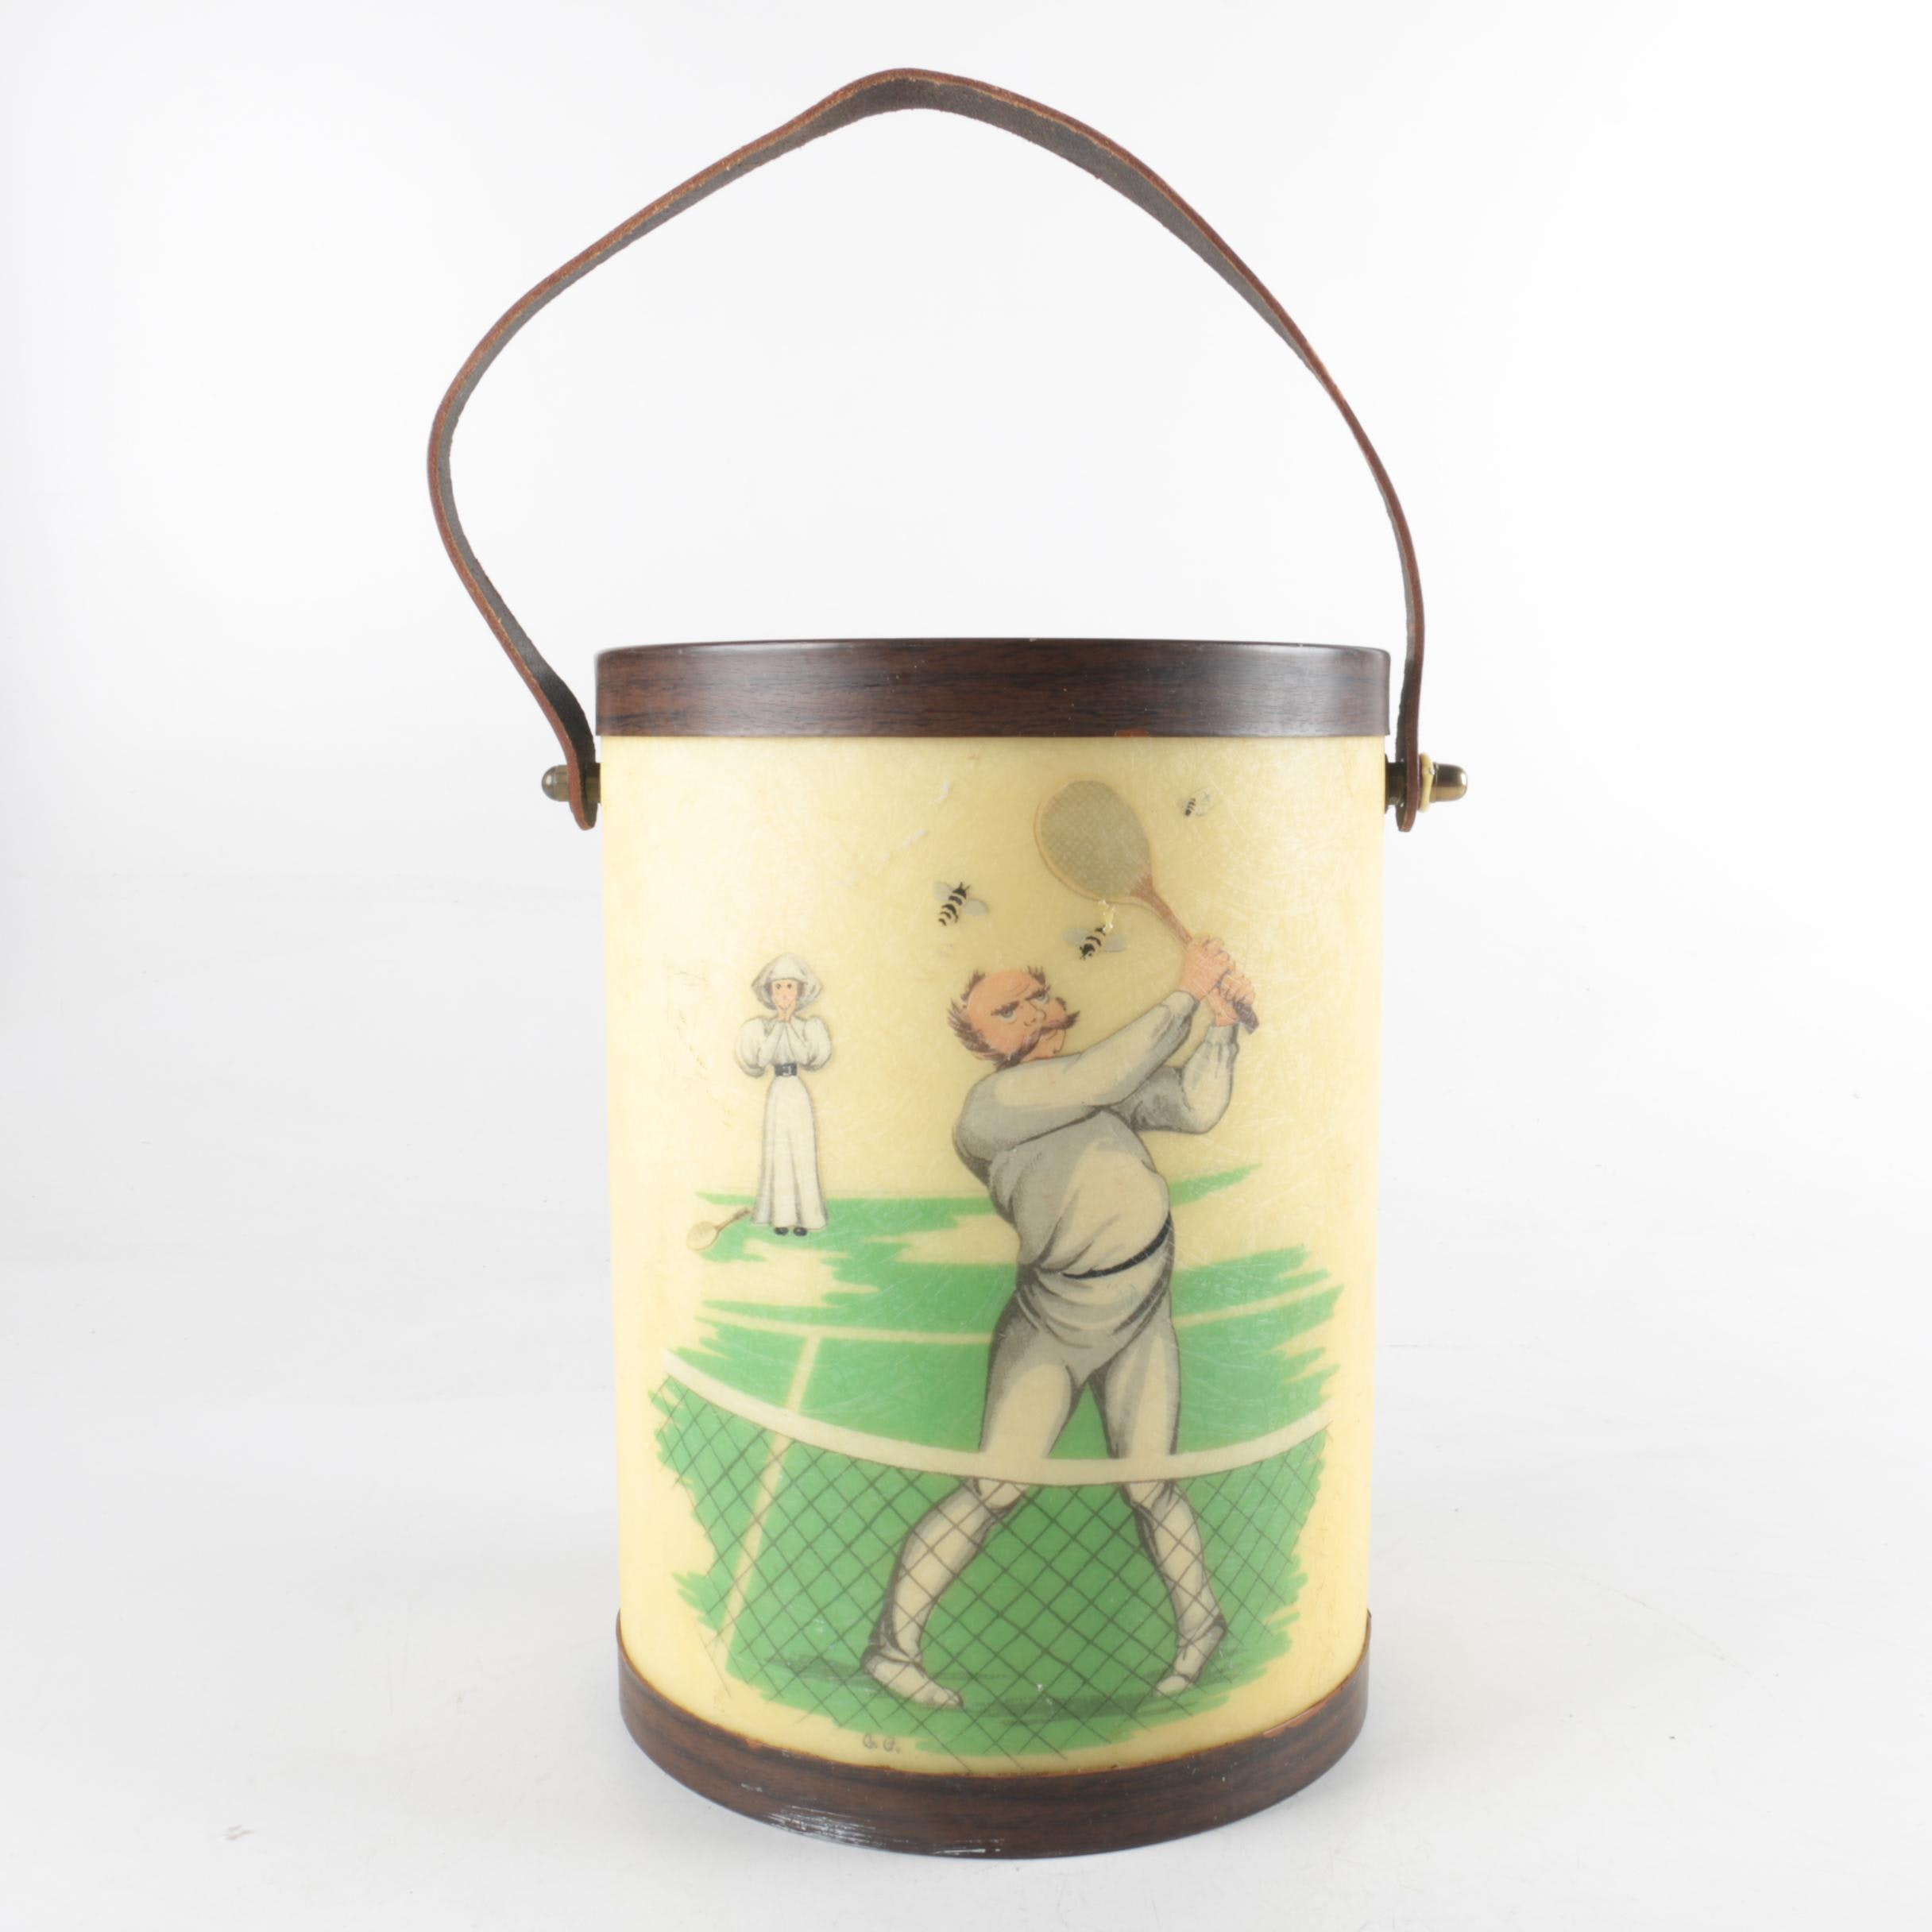 Bacova Hand Made Ice Bucket with Tennis and Bee Motif